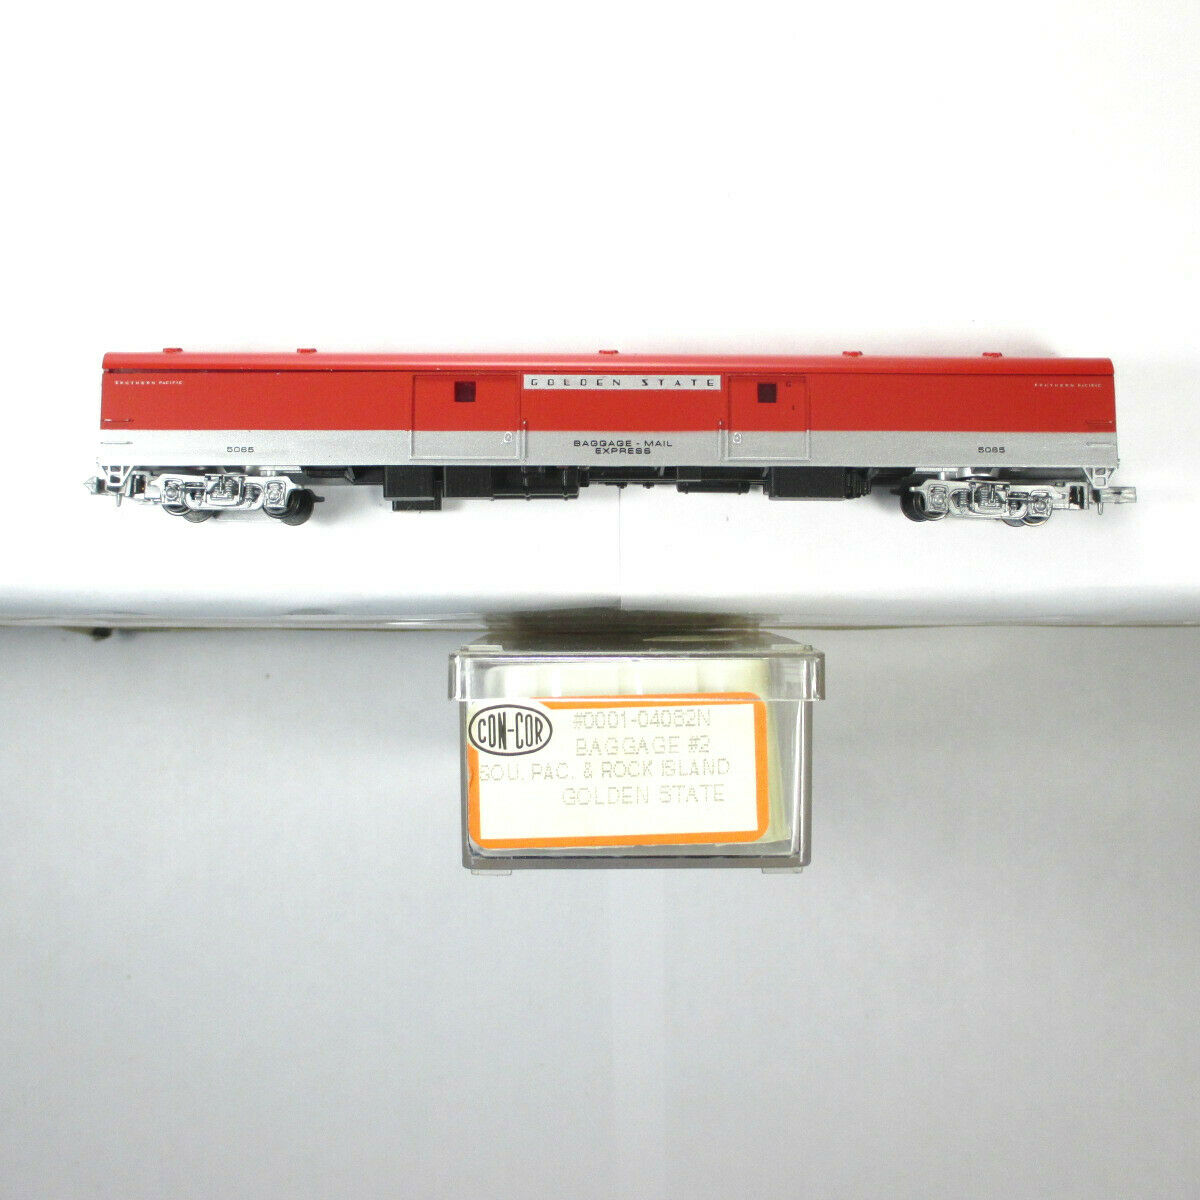 N Scale - Con-Cor - 0001-04082N - Passenger Car, Lightweight, Great Northern Baggage - Rock Island